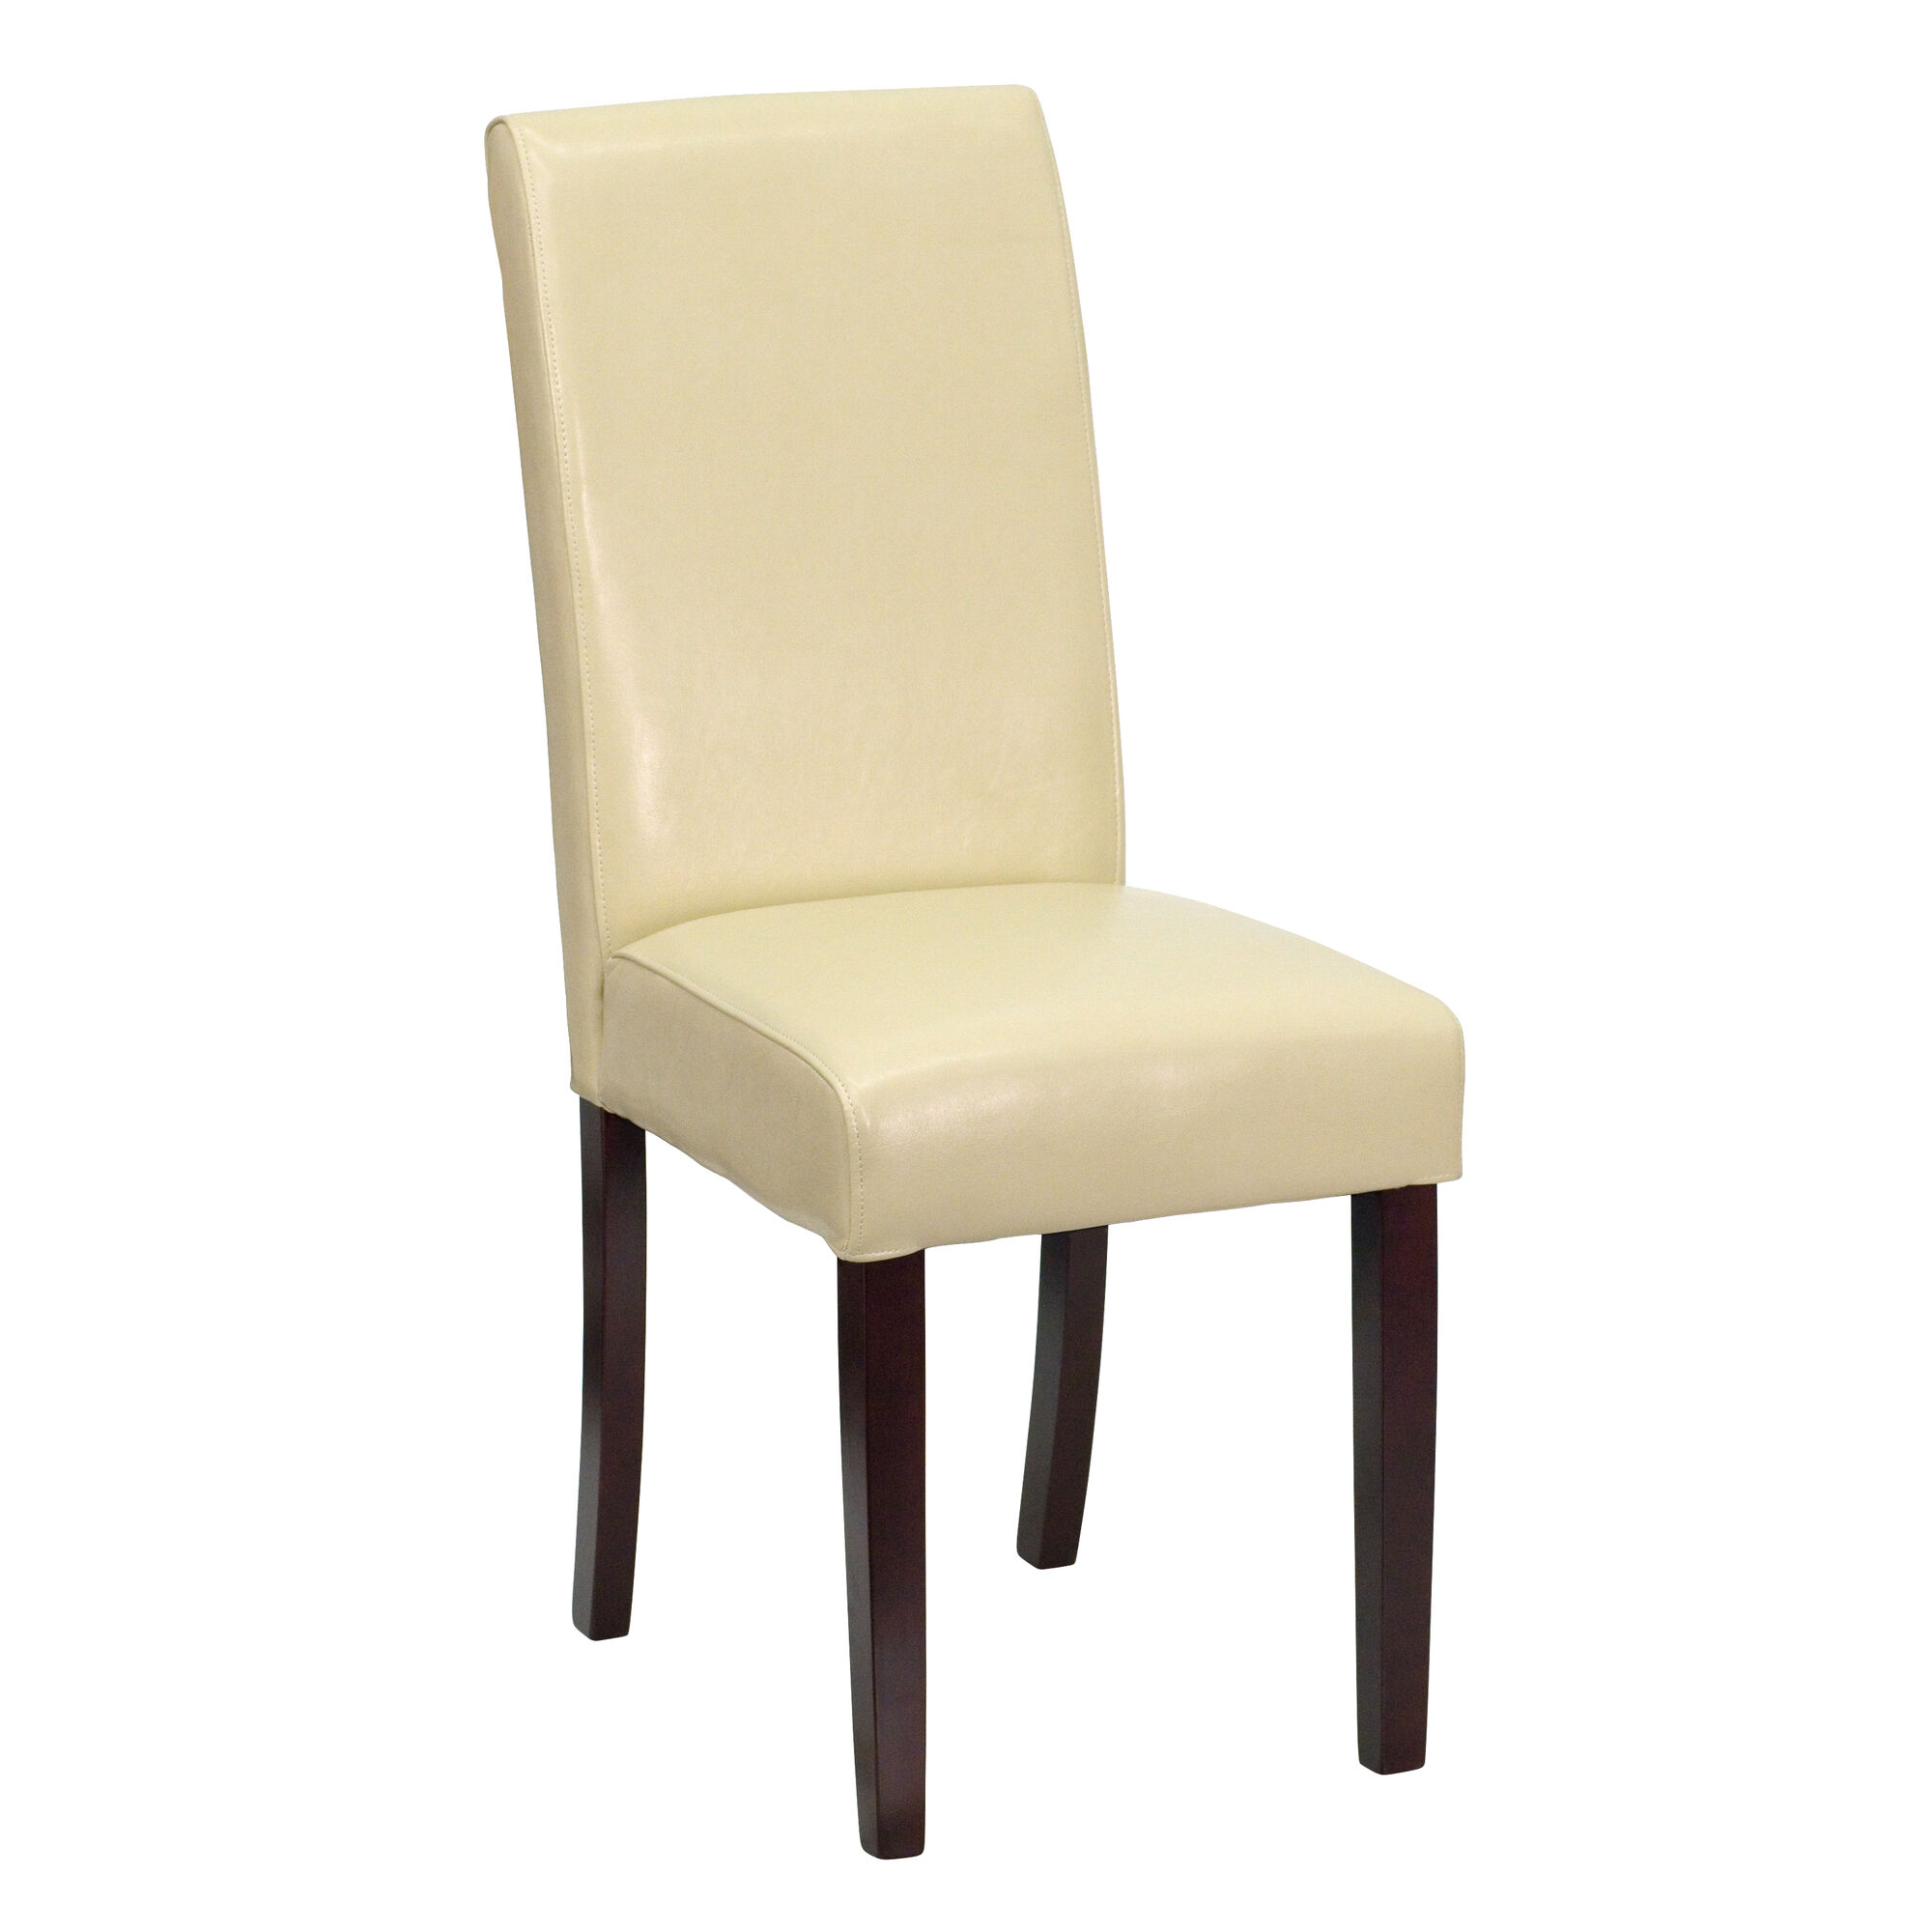 Ivory parsons chair bt gg